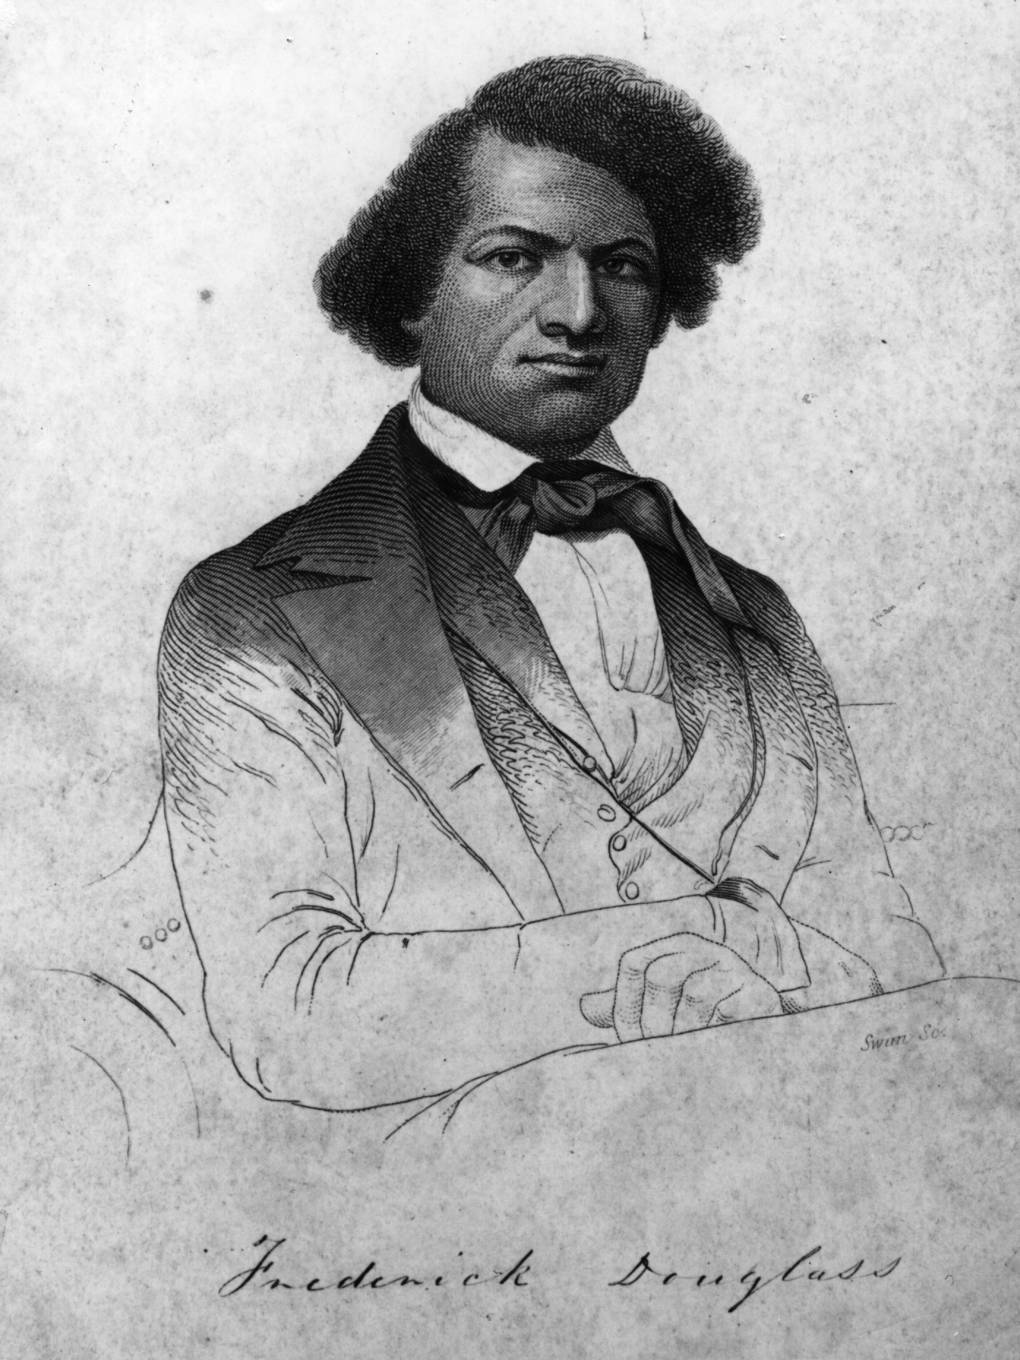 As a young enslaved boy in Baltimore, Frederick Douglass bartered pieces of bread for lessons in literacy. His teachers were white neighborhood kids, who could read and write but had no food. At 20, he ran away to New York and started his new life as an anti-slavery orator and activist.